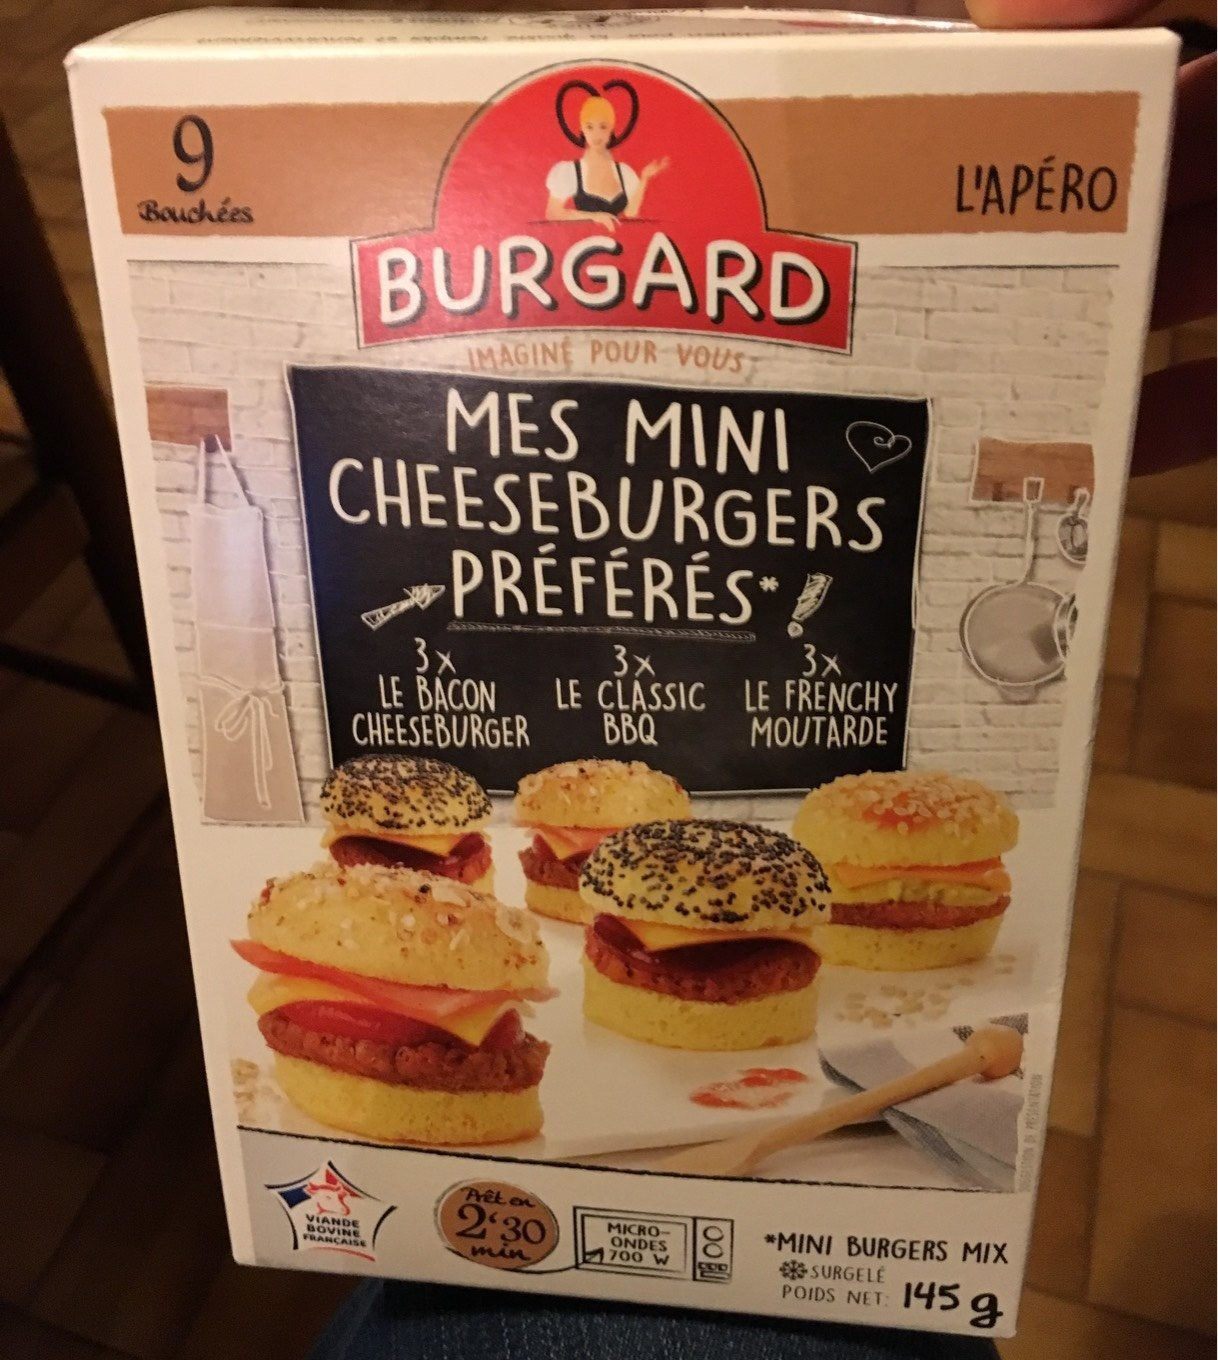 Mes mini cheeseburgers preferes - Product - fr